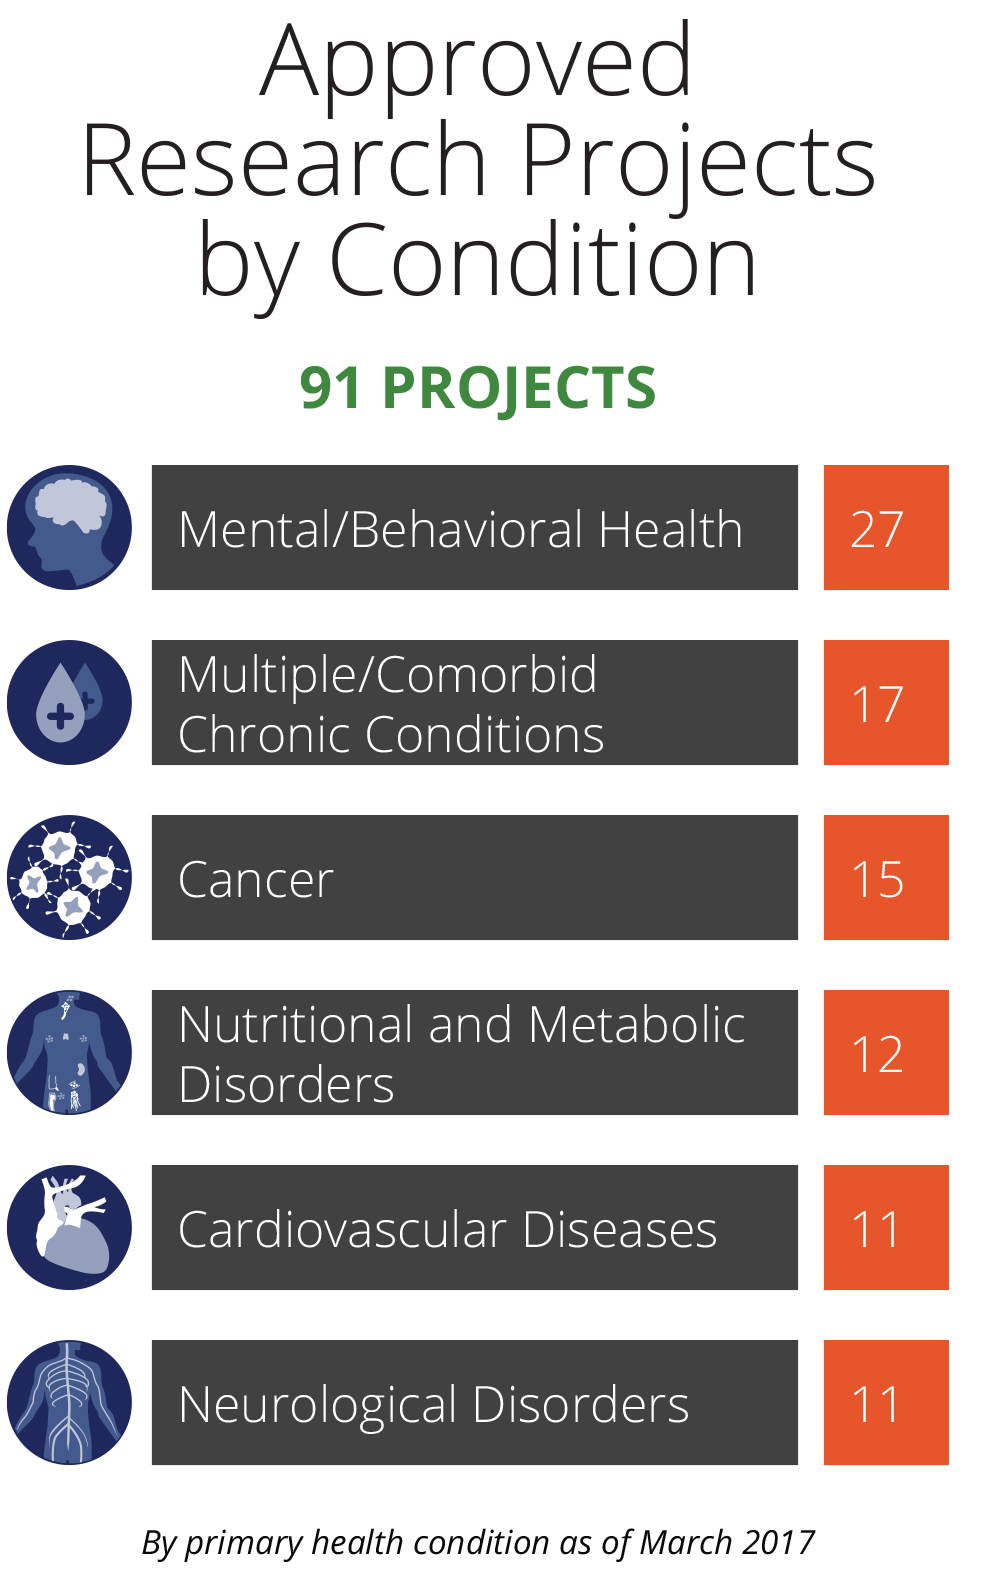 PCORI Approved Research Projects by Conditions for the Improving Healthcare Systems program